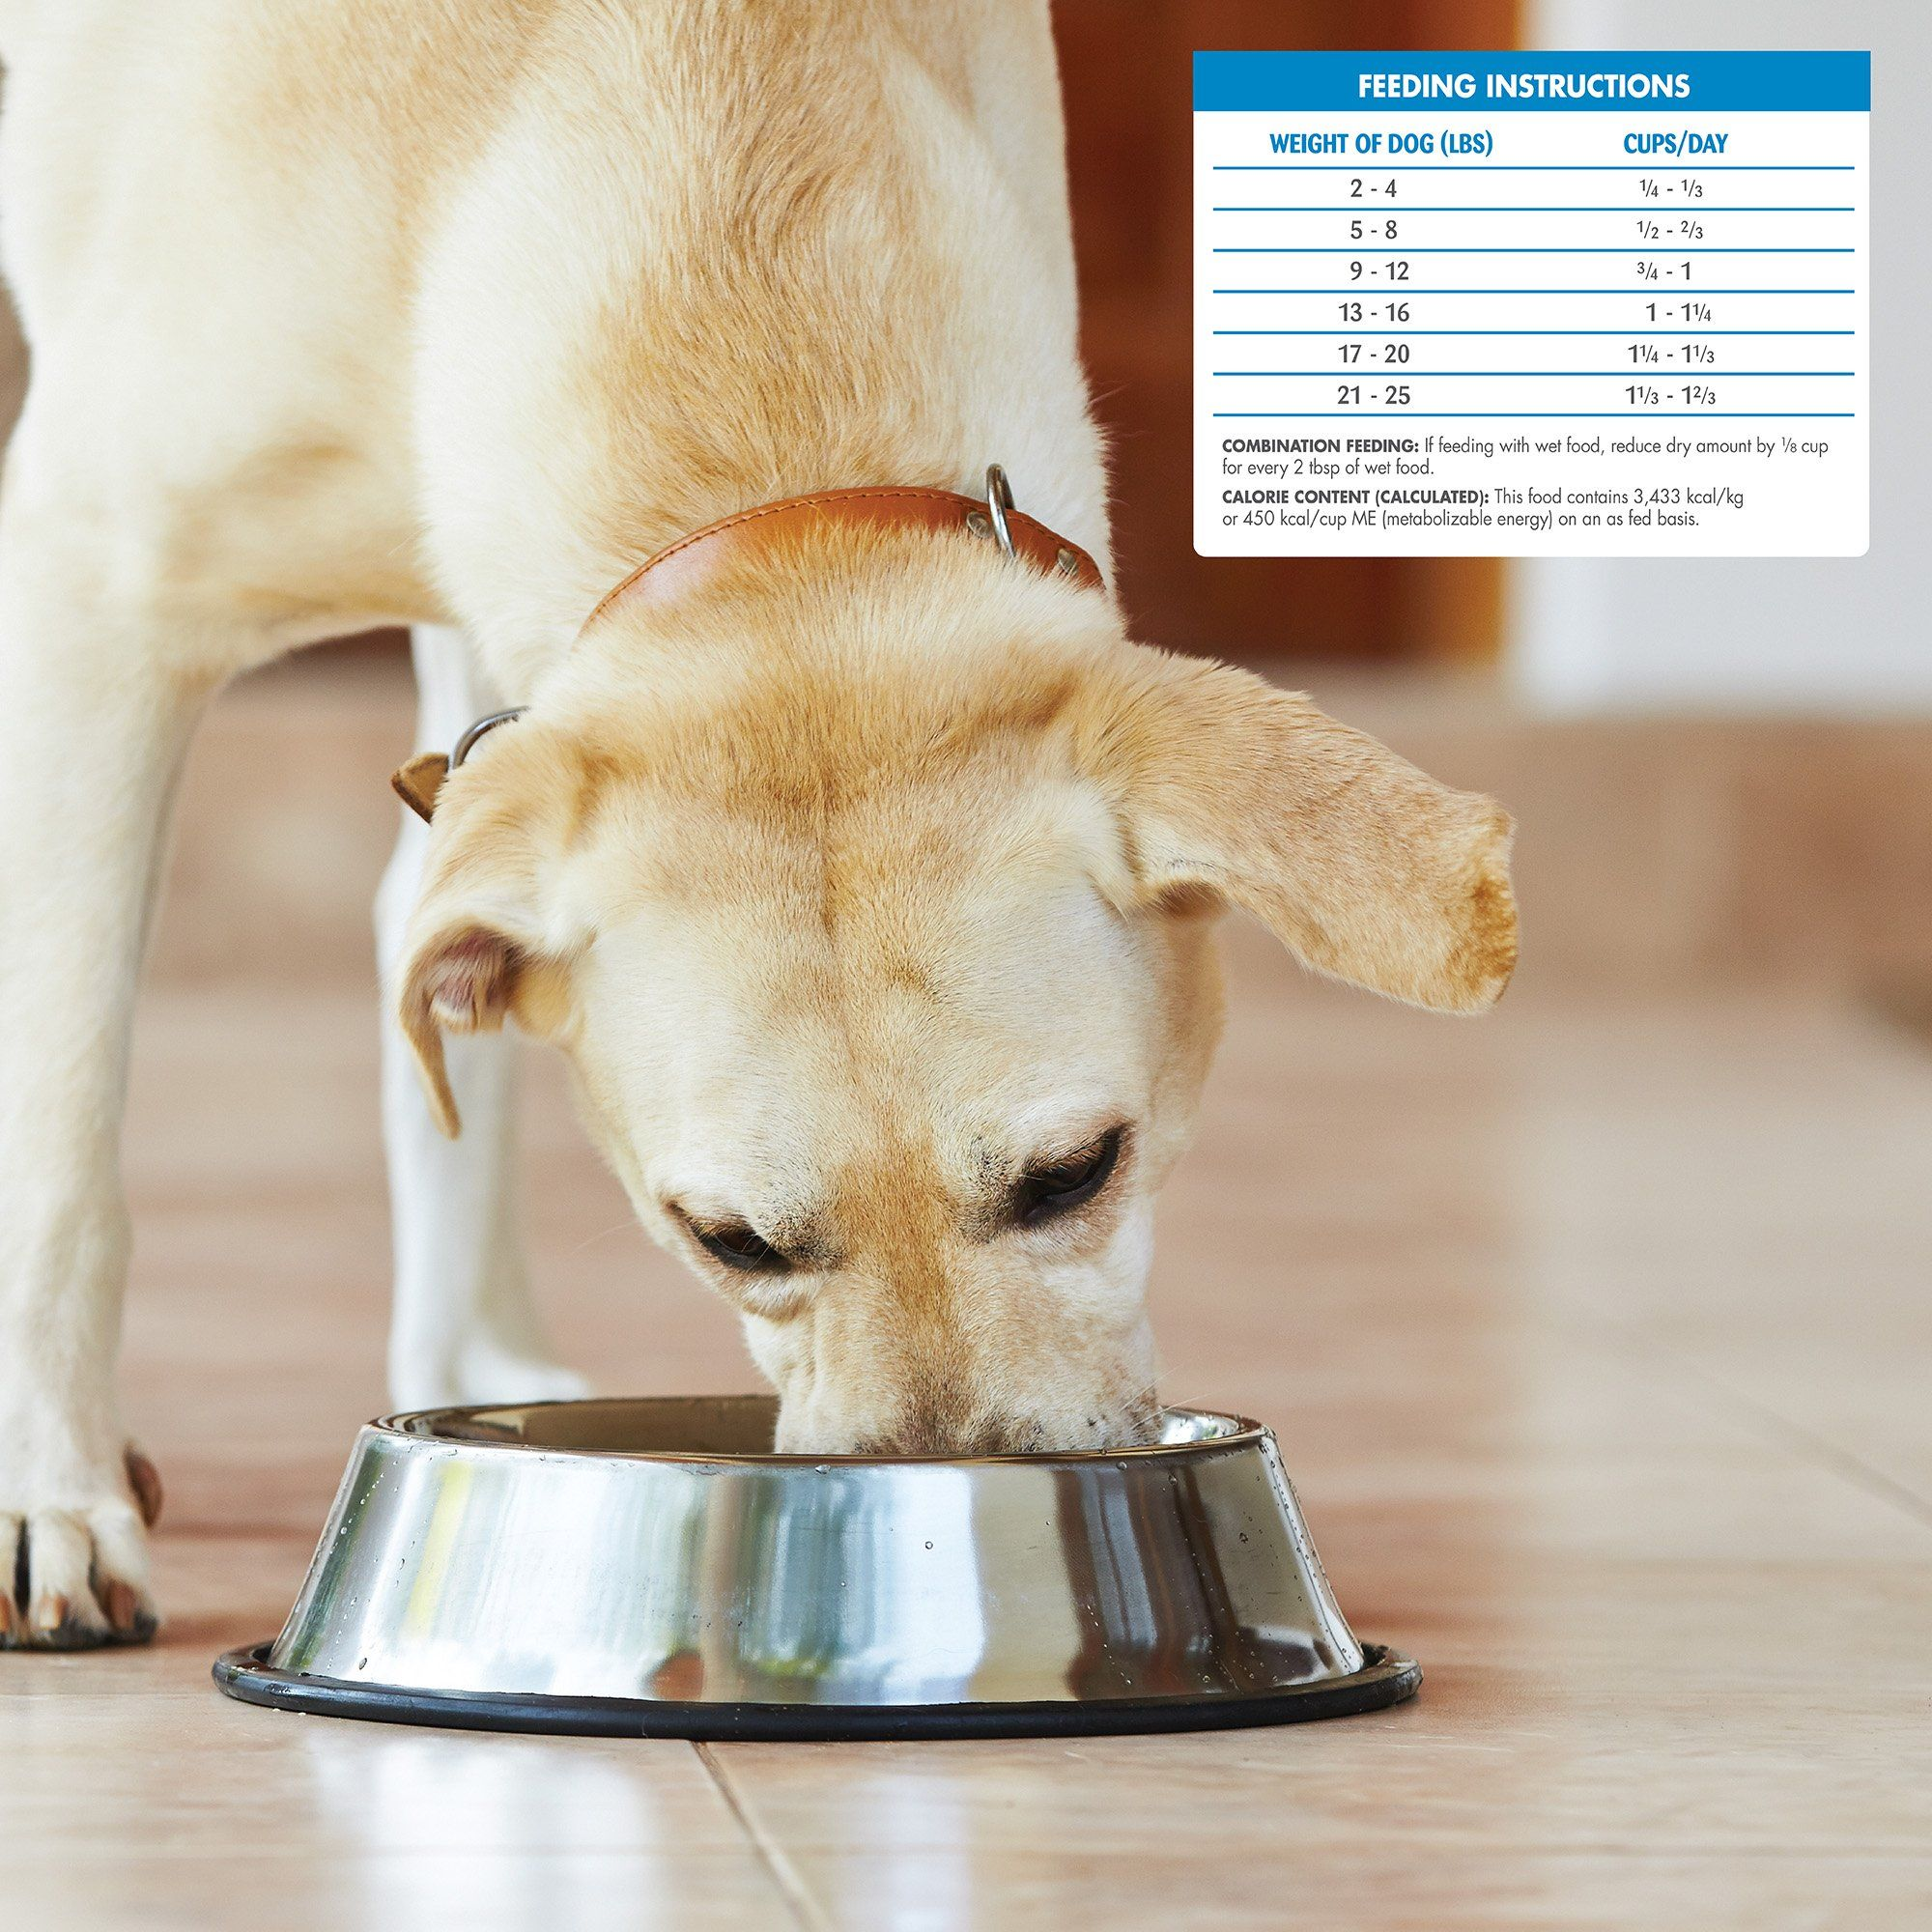 Wellness Simple Natural Grain Free Dry Limited Ingredient Small Breed Dog Food Salmon And Pot Limited Ingredient Dog Food Small Breed Dog Food Dog Food Recipes